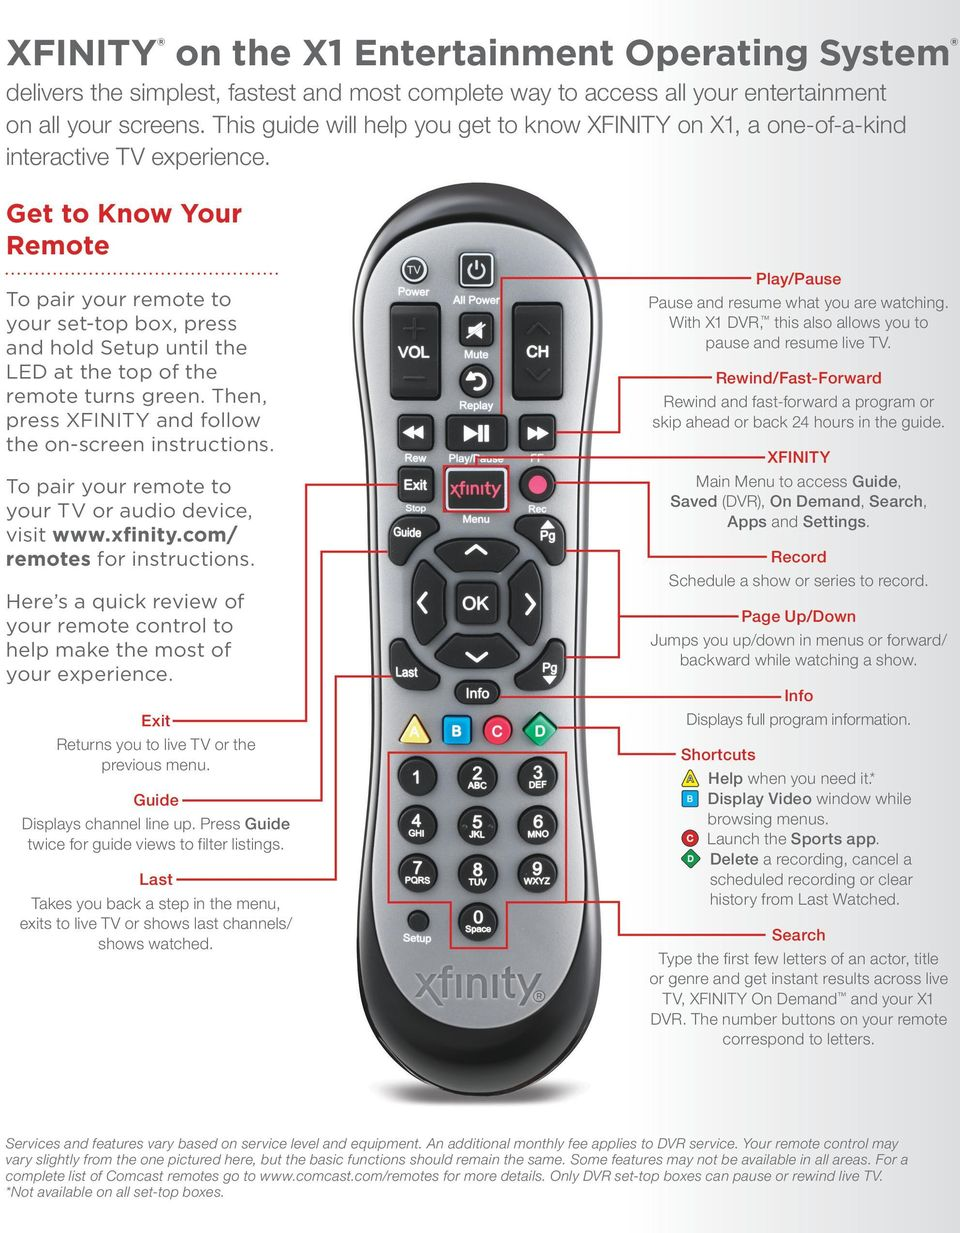 Get to Know Your Remote To pair your remote to your set-top box, press and hold Setup until the LED at the top of the remote turns green. Then, press XFINITY and follow the on screen instructions.